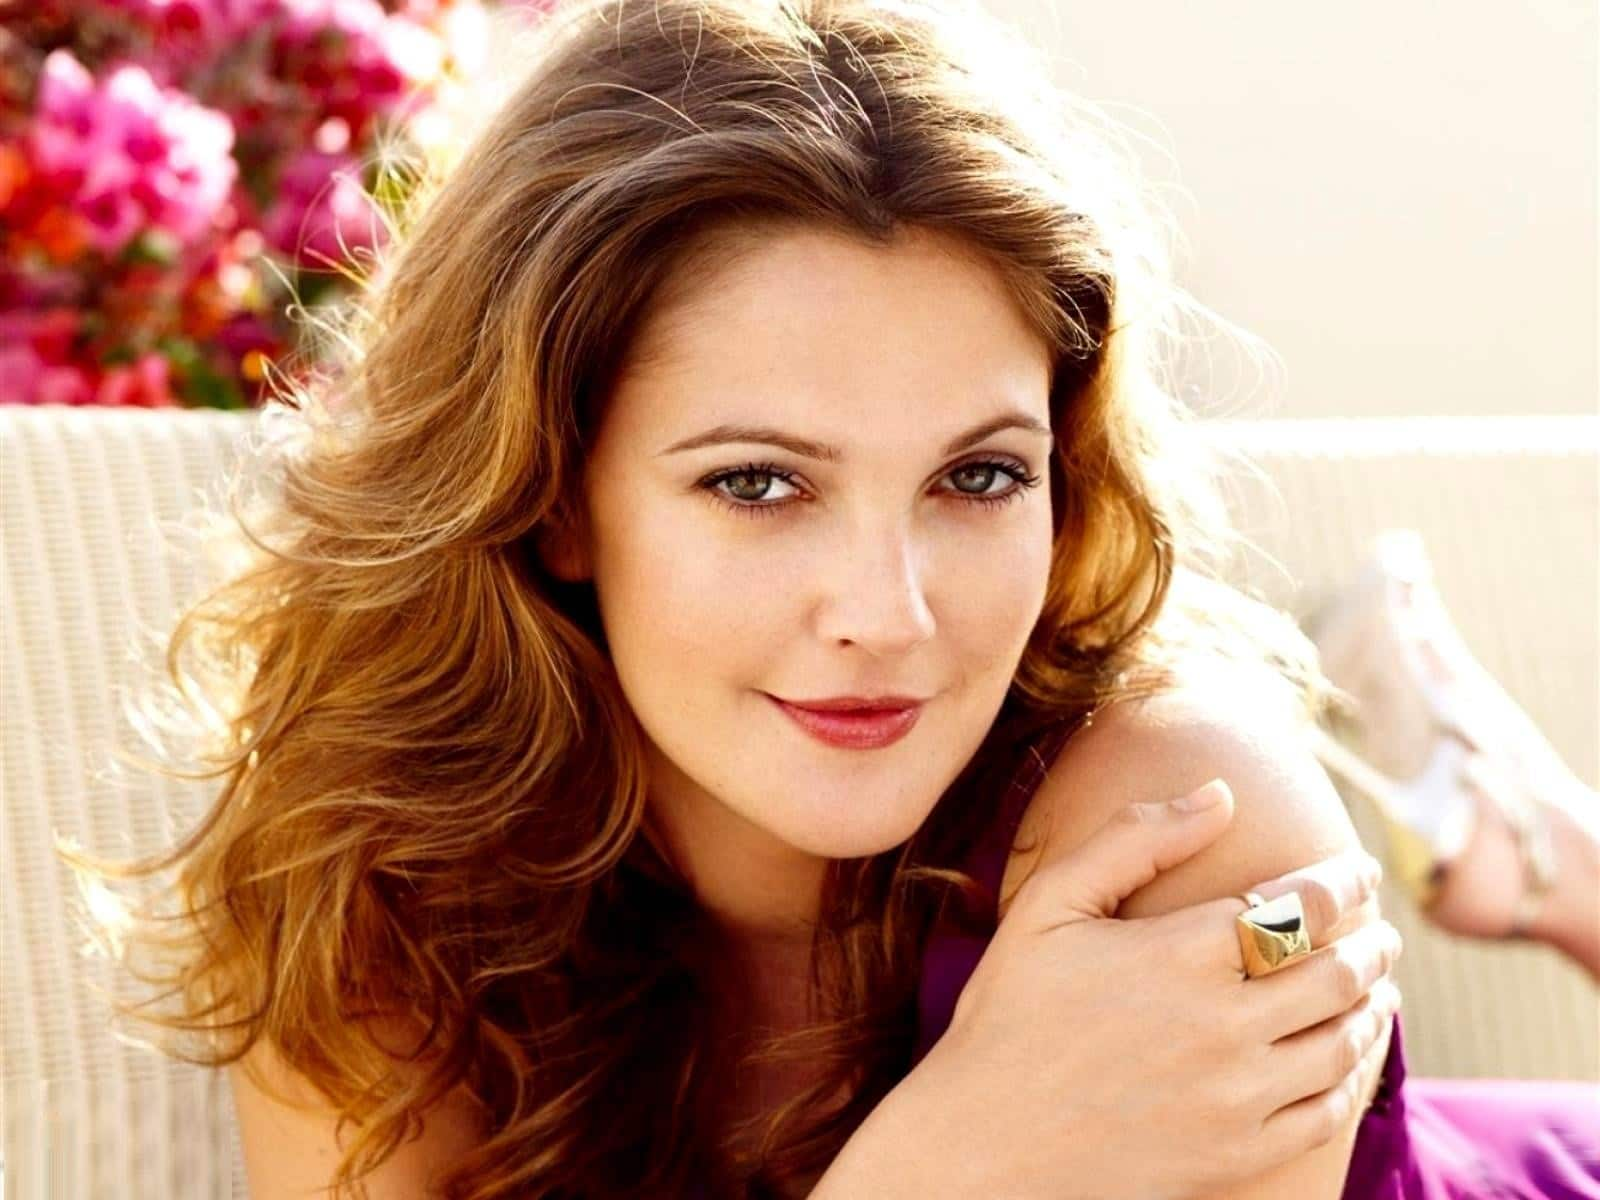 Hot is a state of mind: Drew Barrymore